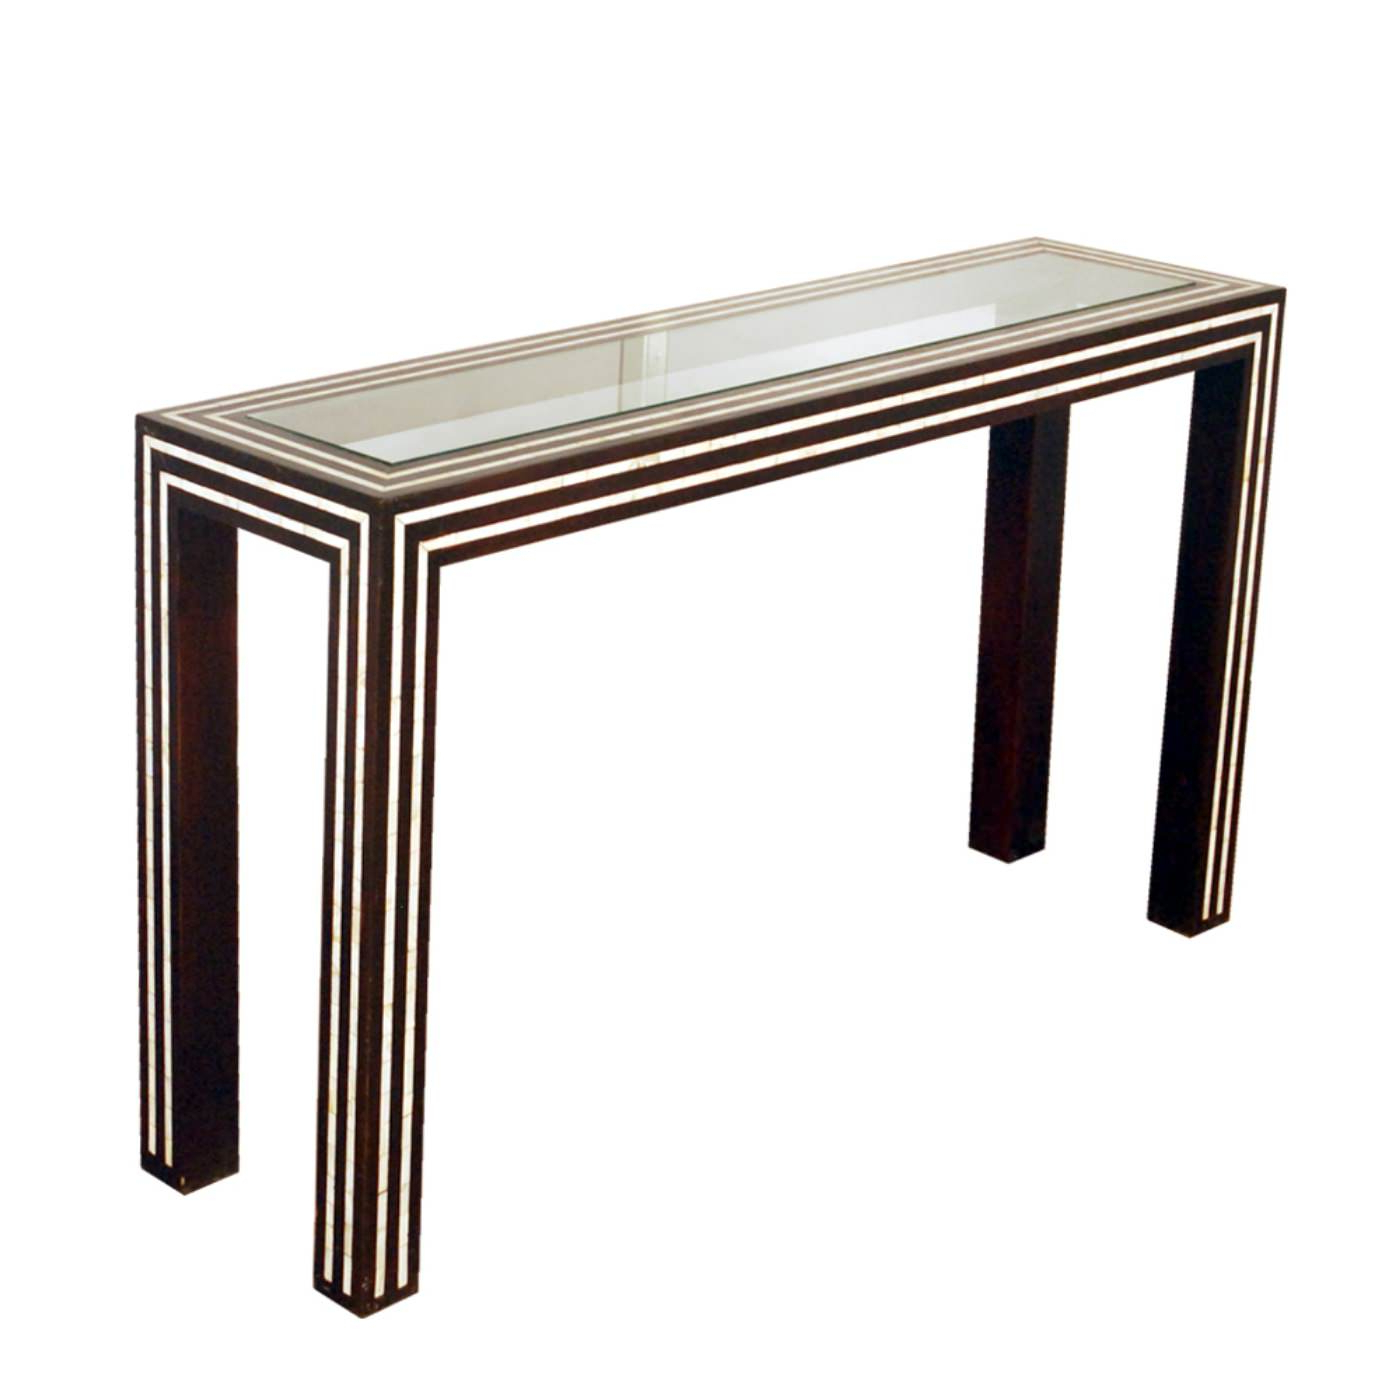 Well Known Black And White Inlay Console Tables Intended For Black And White Pearl Inlay Console: Glass And Inlay Console Table (View 17 of 20)